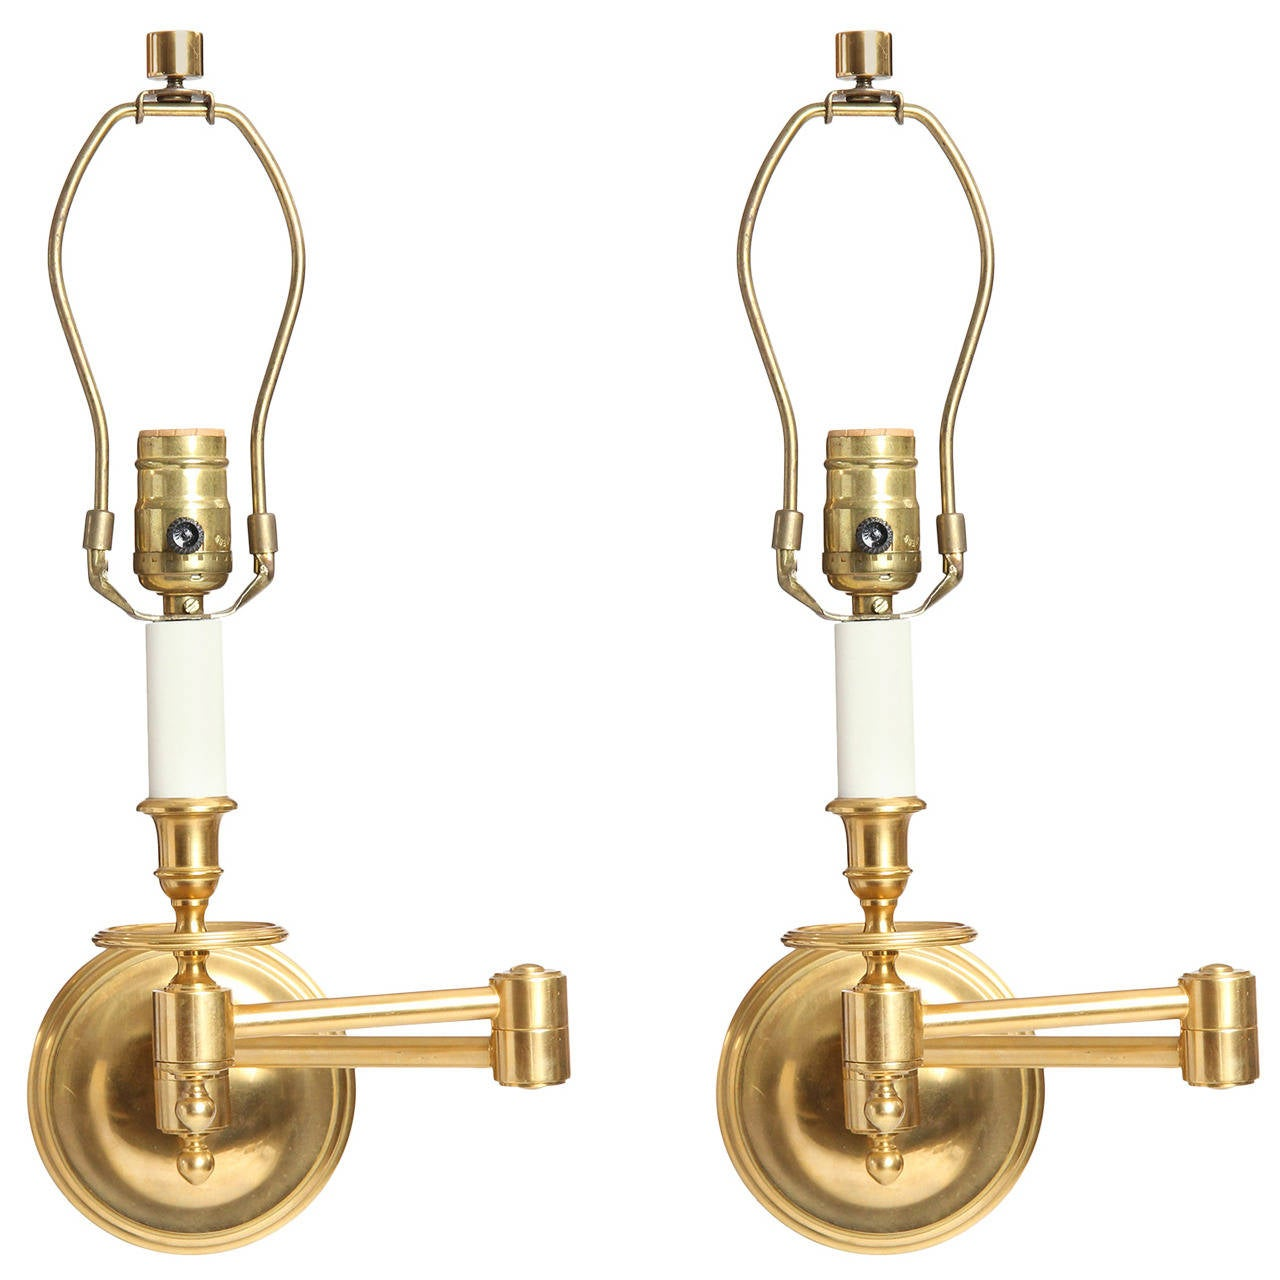 A Pair of Brass Swing Arm Wall Sconces For Sale at 1stdibs